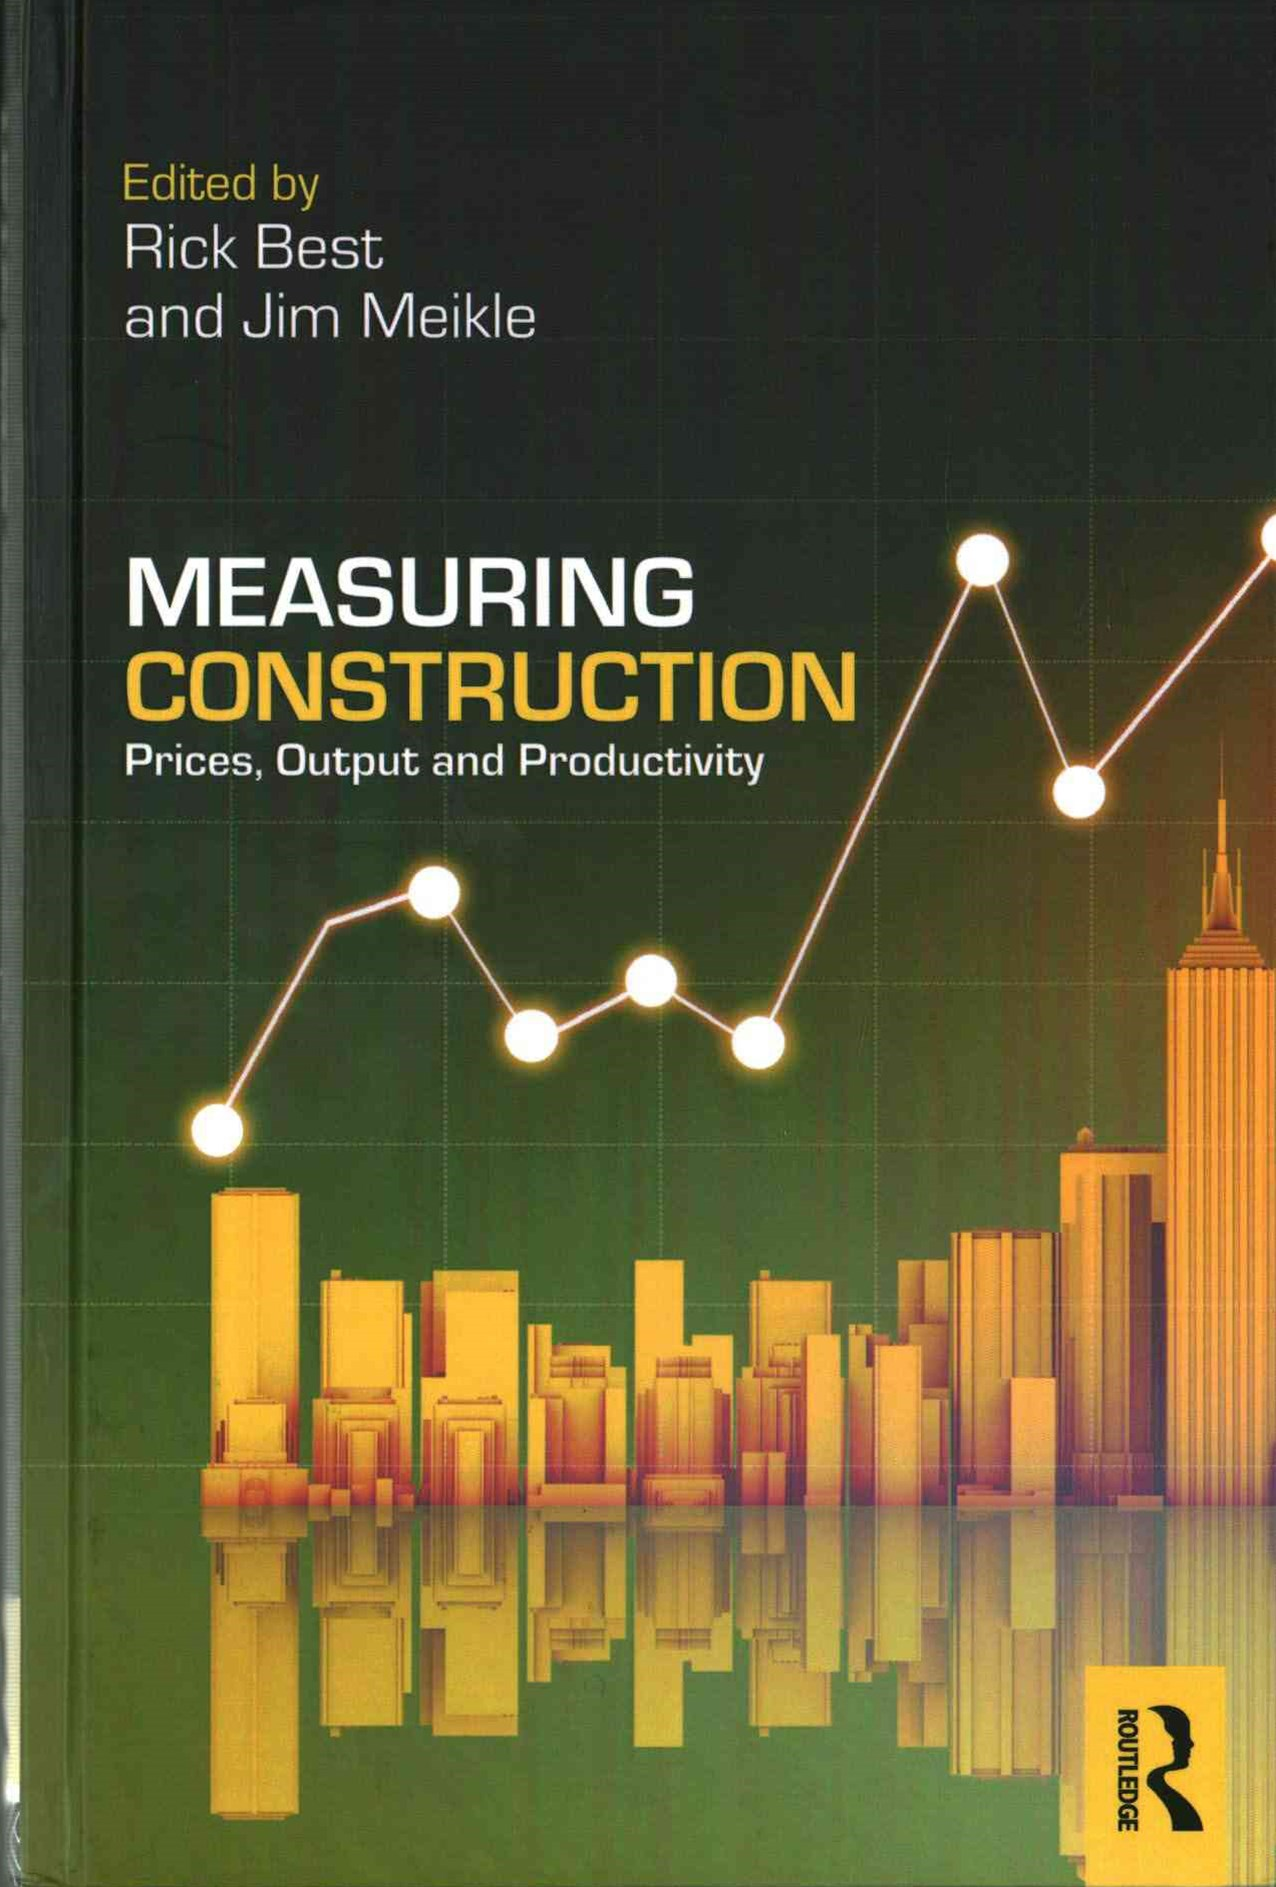 Measuring Construction